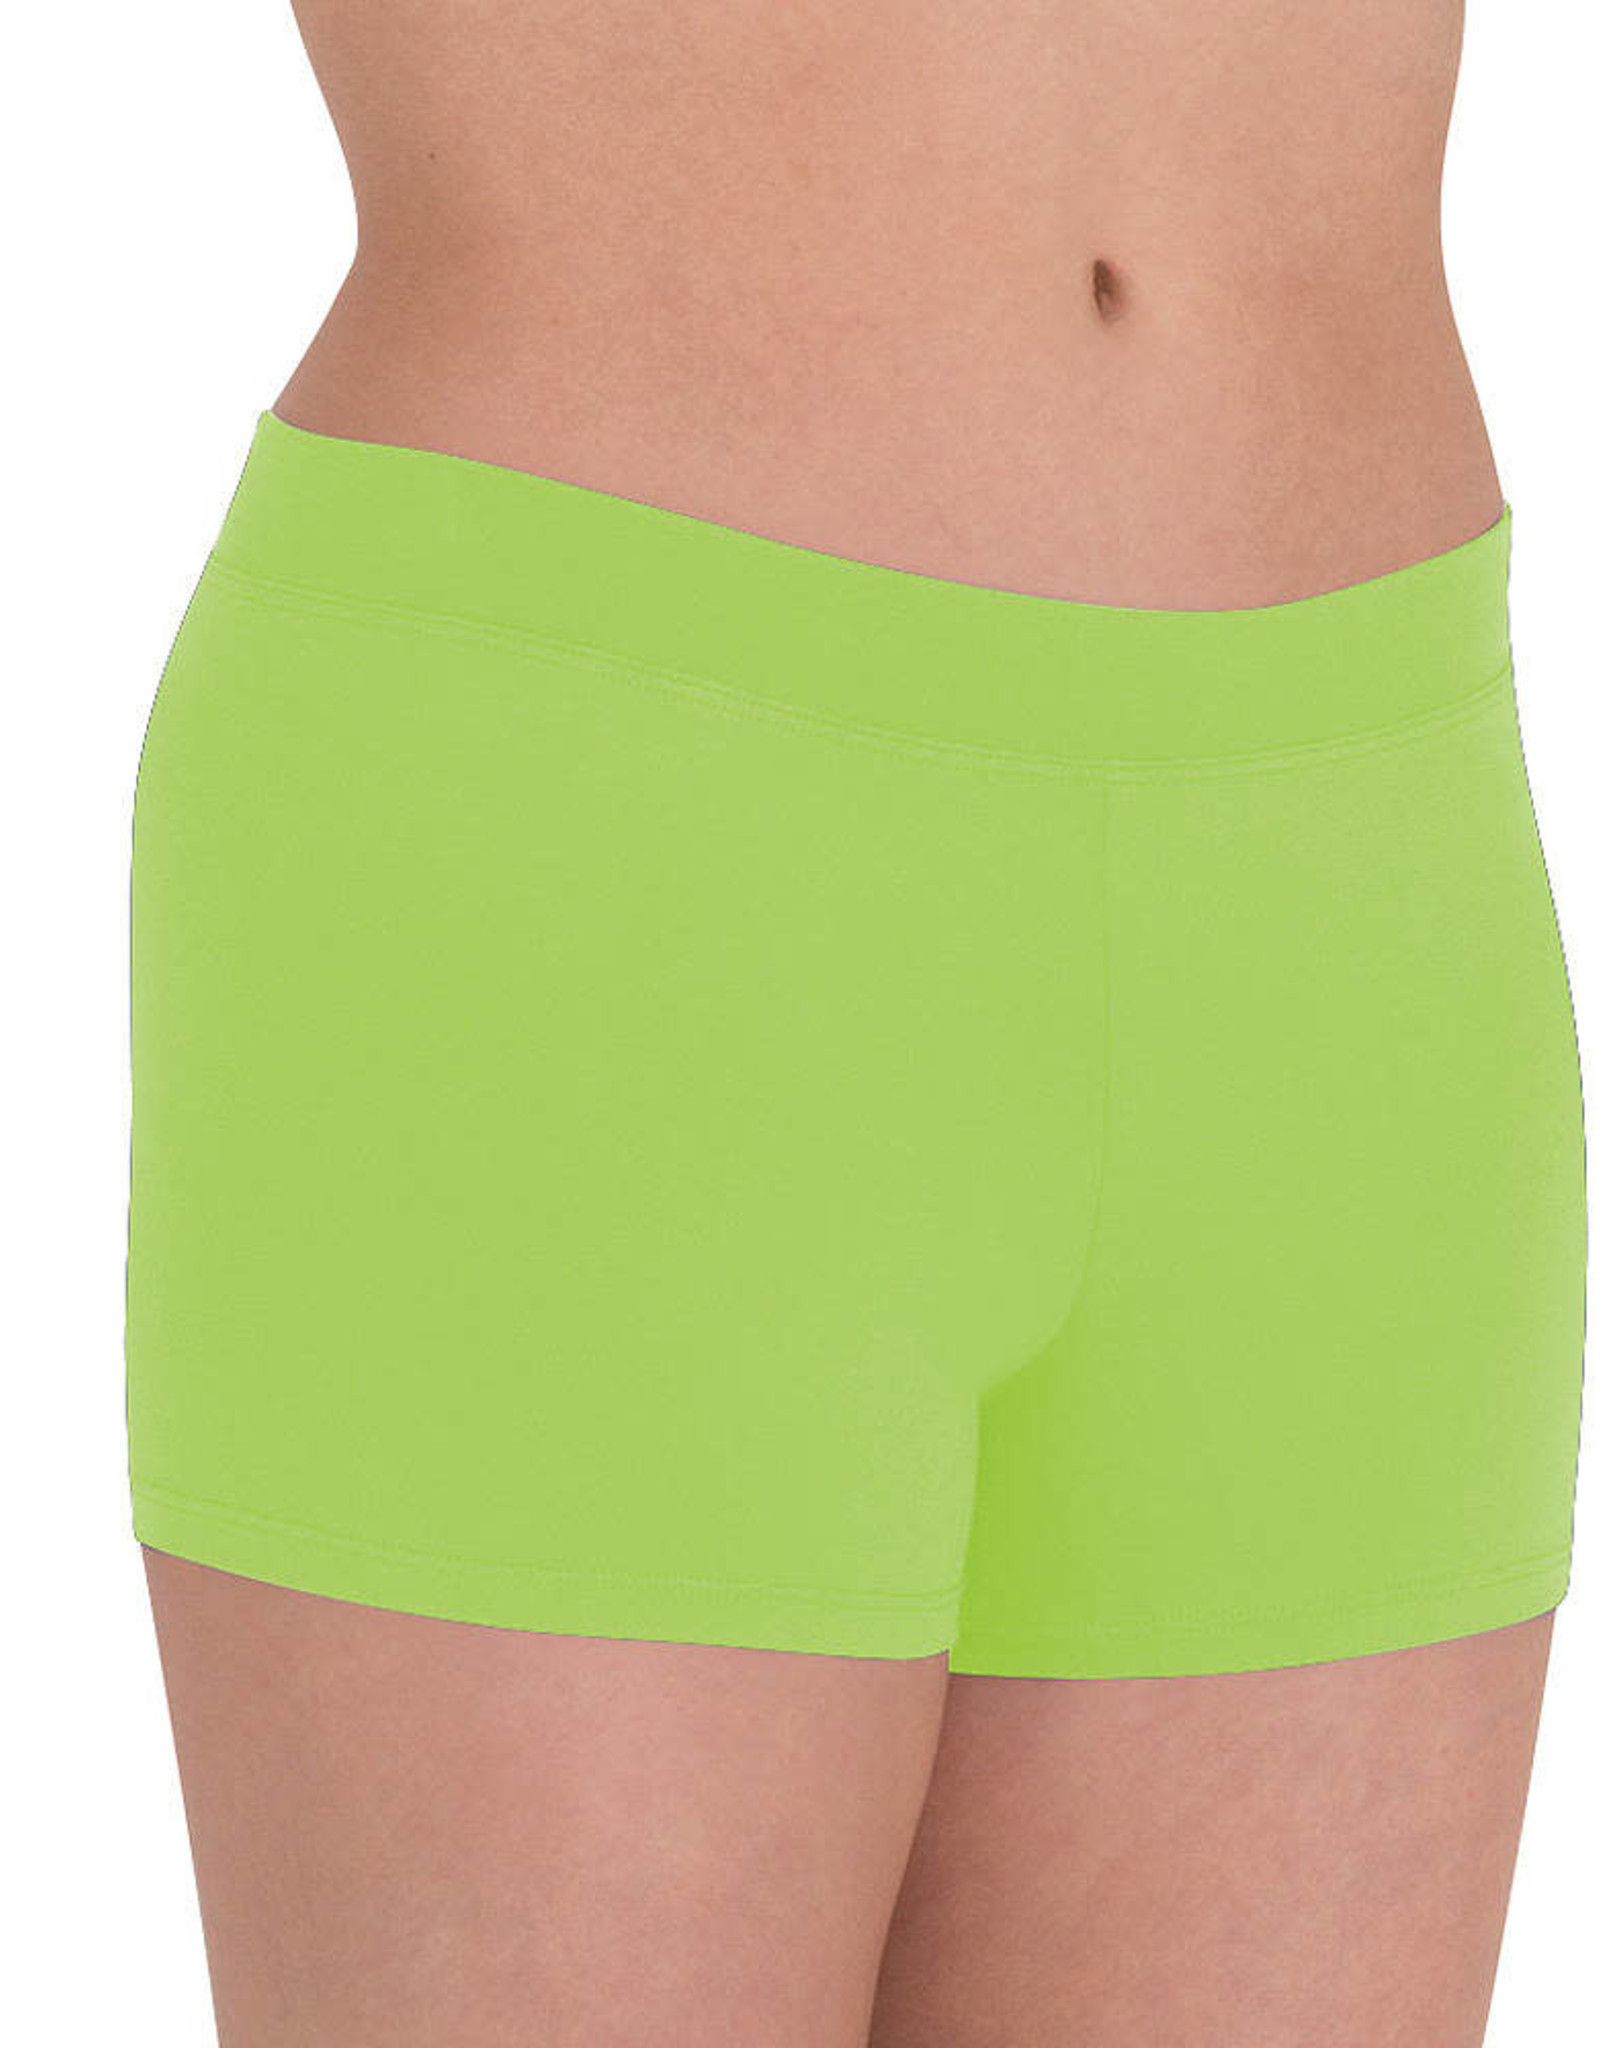 Body Wrappers Body Wrappers Boy Cut Short Waistband BWP281